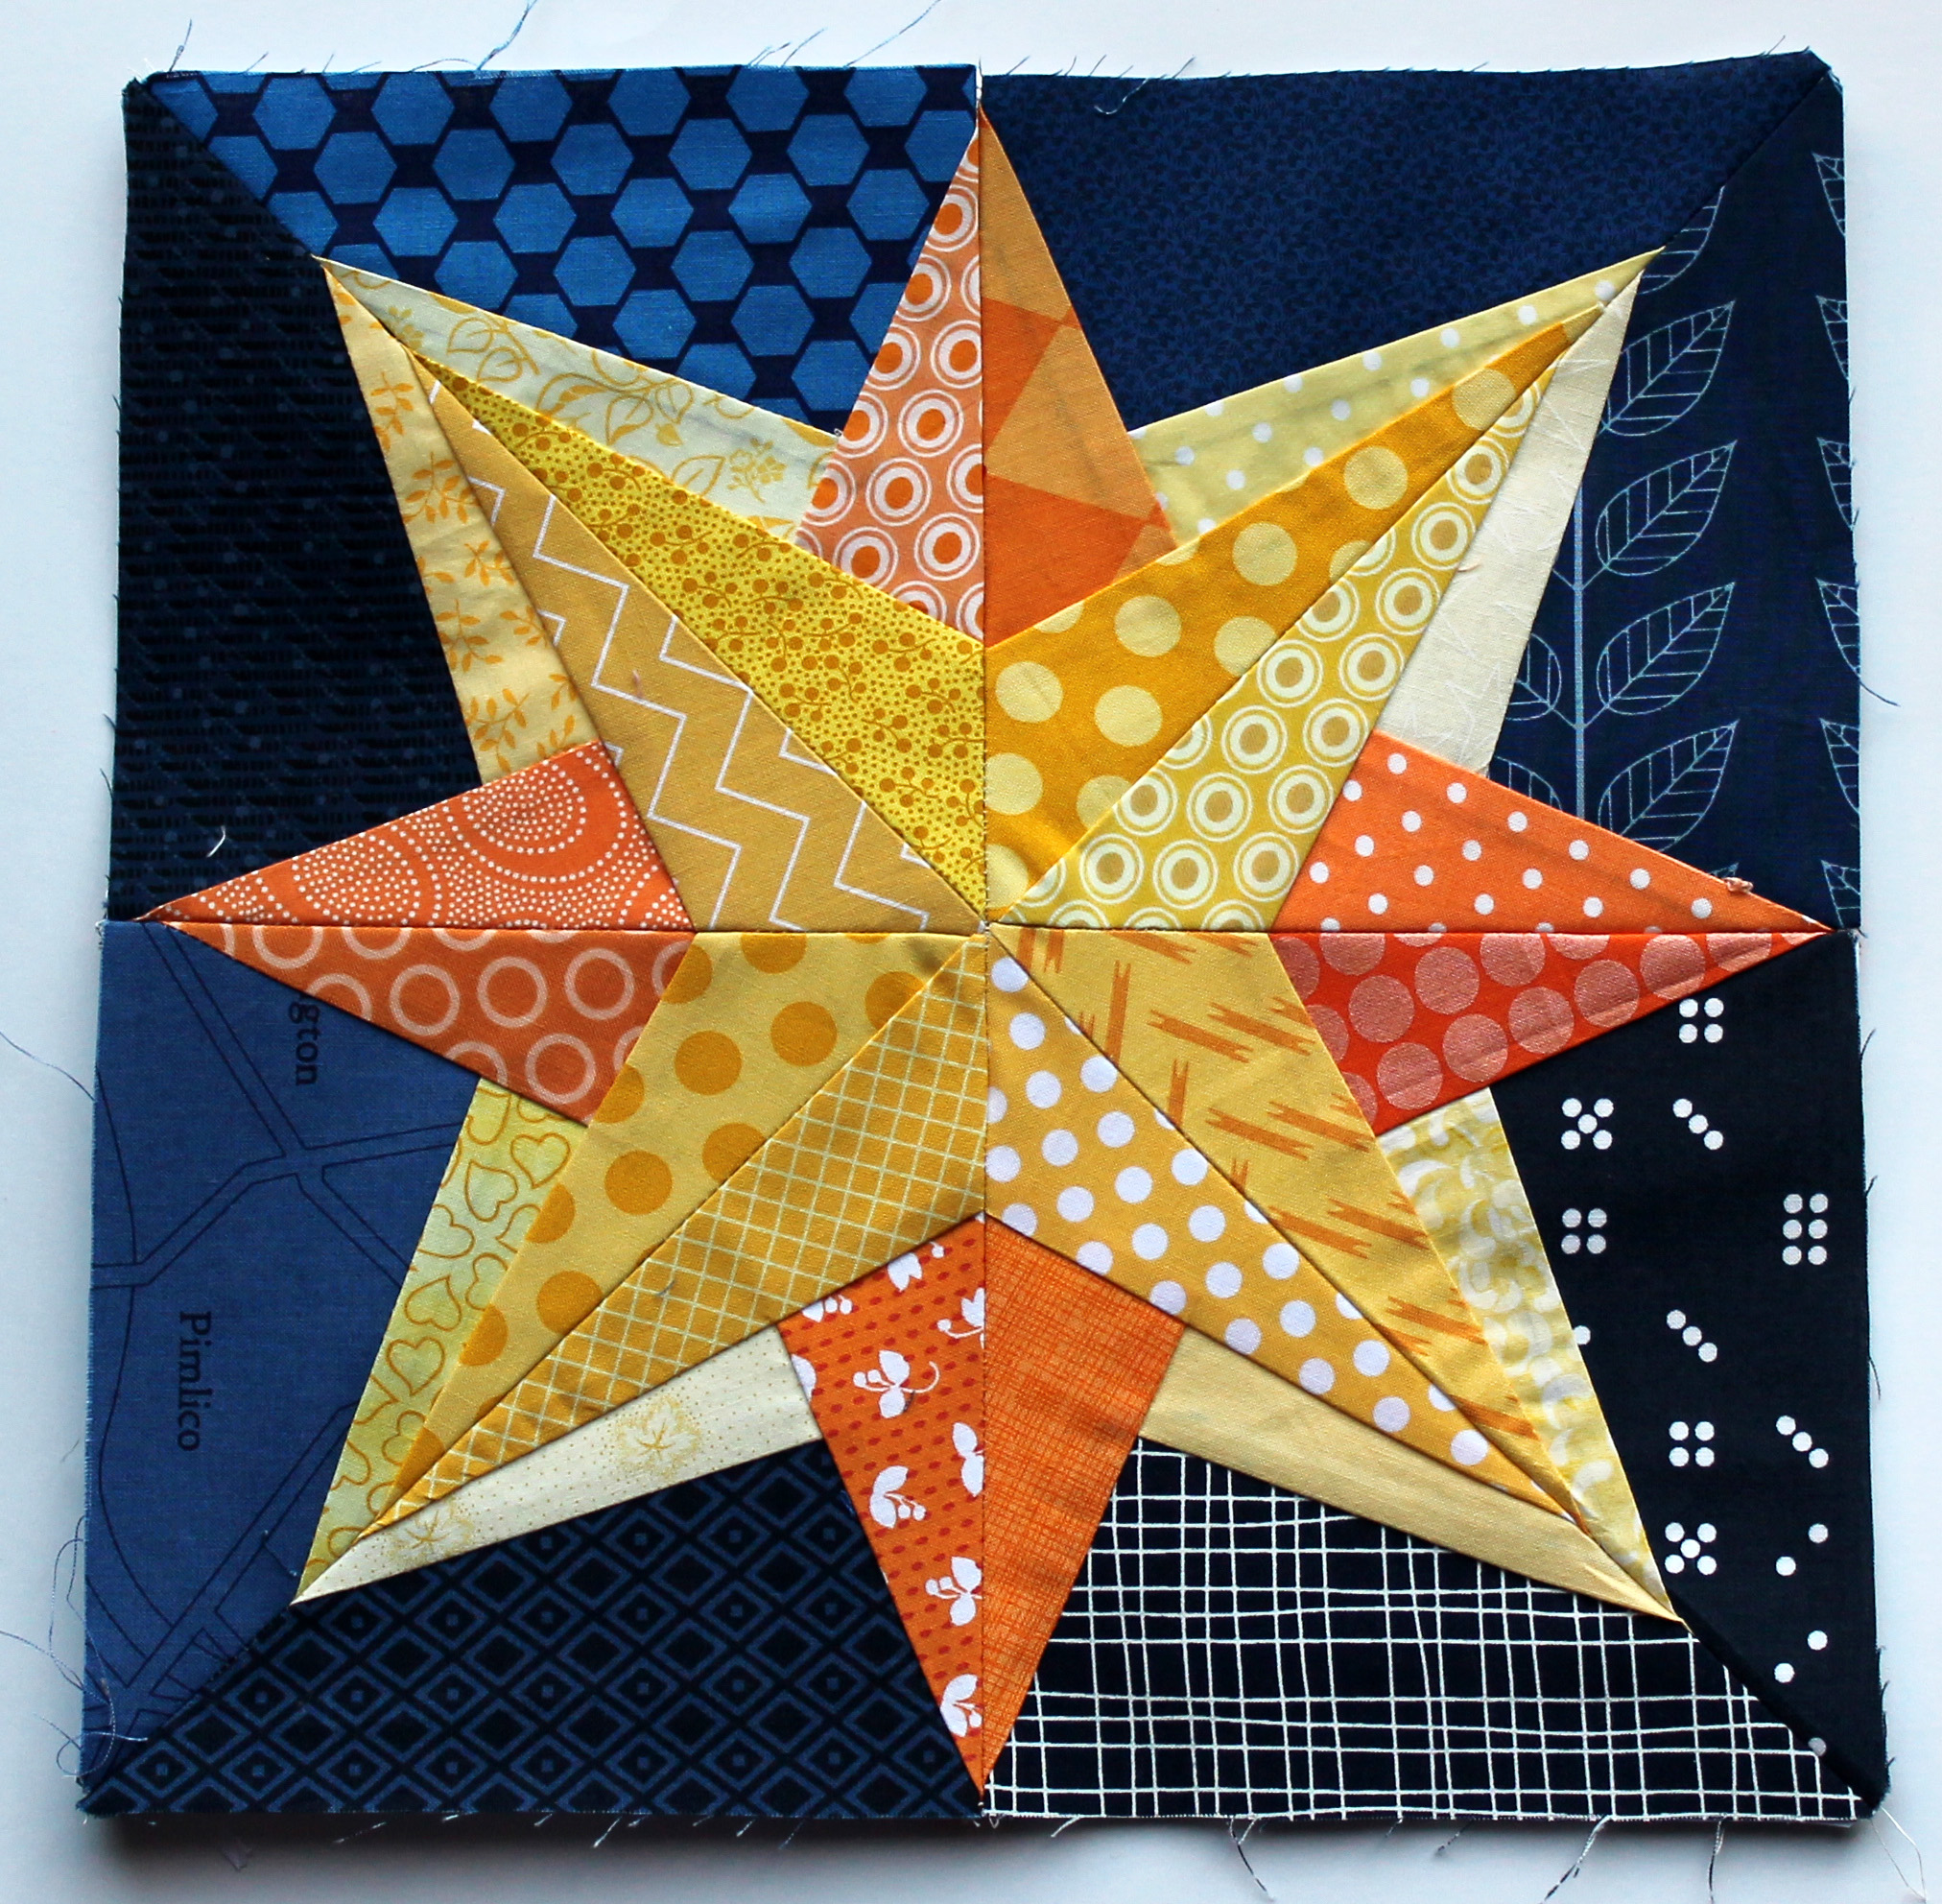 Free Paper Piecing Patterns Quilt Blocks : Starry Nights grow Paper Piecing Monday WOMBAT QUILTS